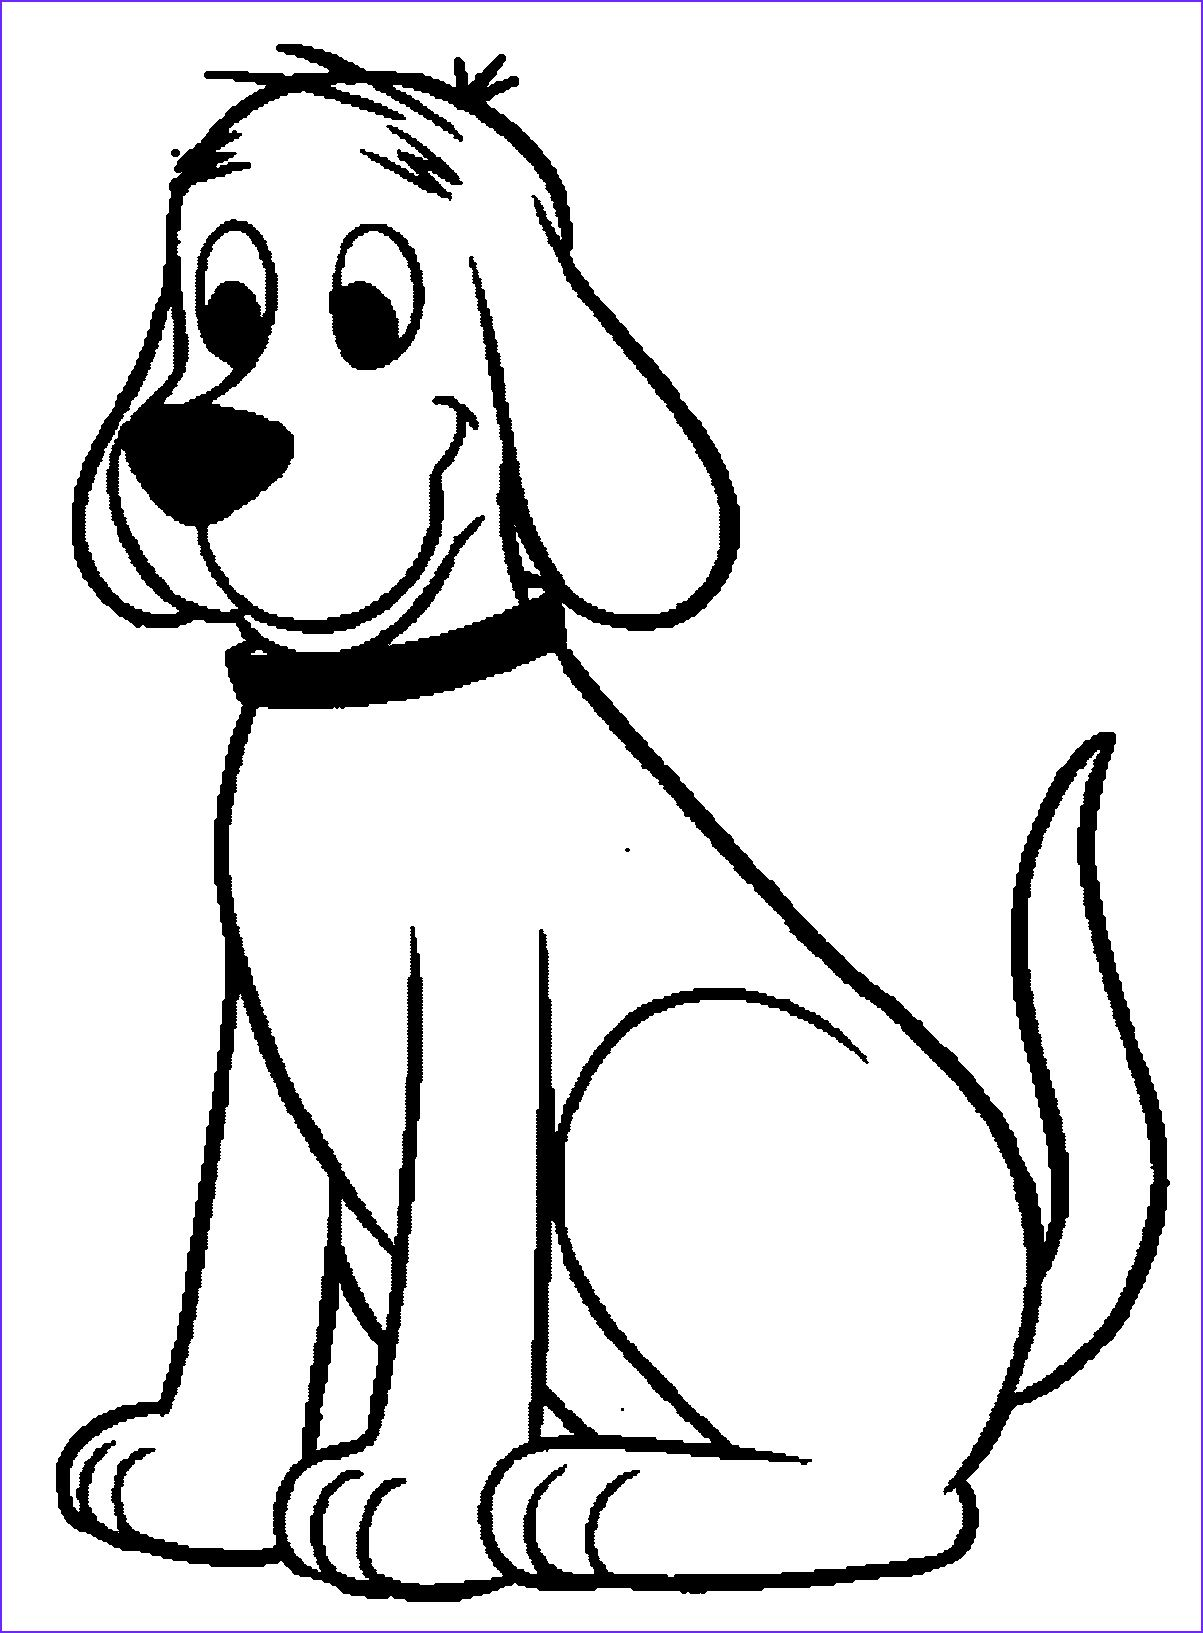 Dog Clifford The Big Red Dog And Friends Coloring Page Dog Coloring Page Thanksgiving Coloring Pages Cartoon Coloring Pages